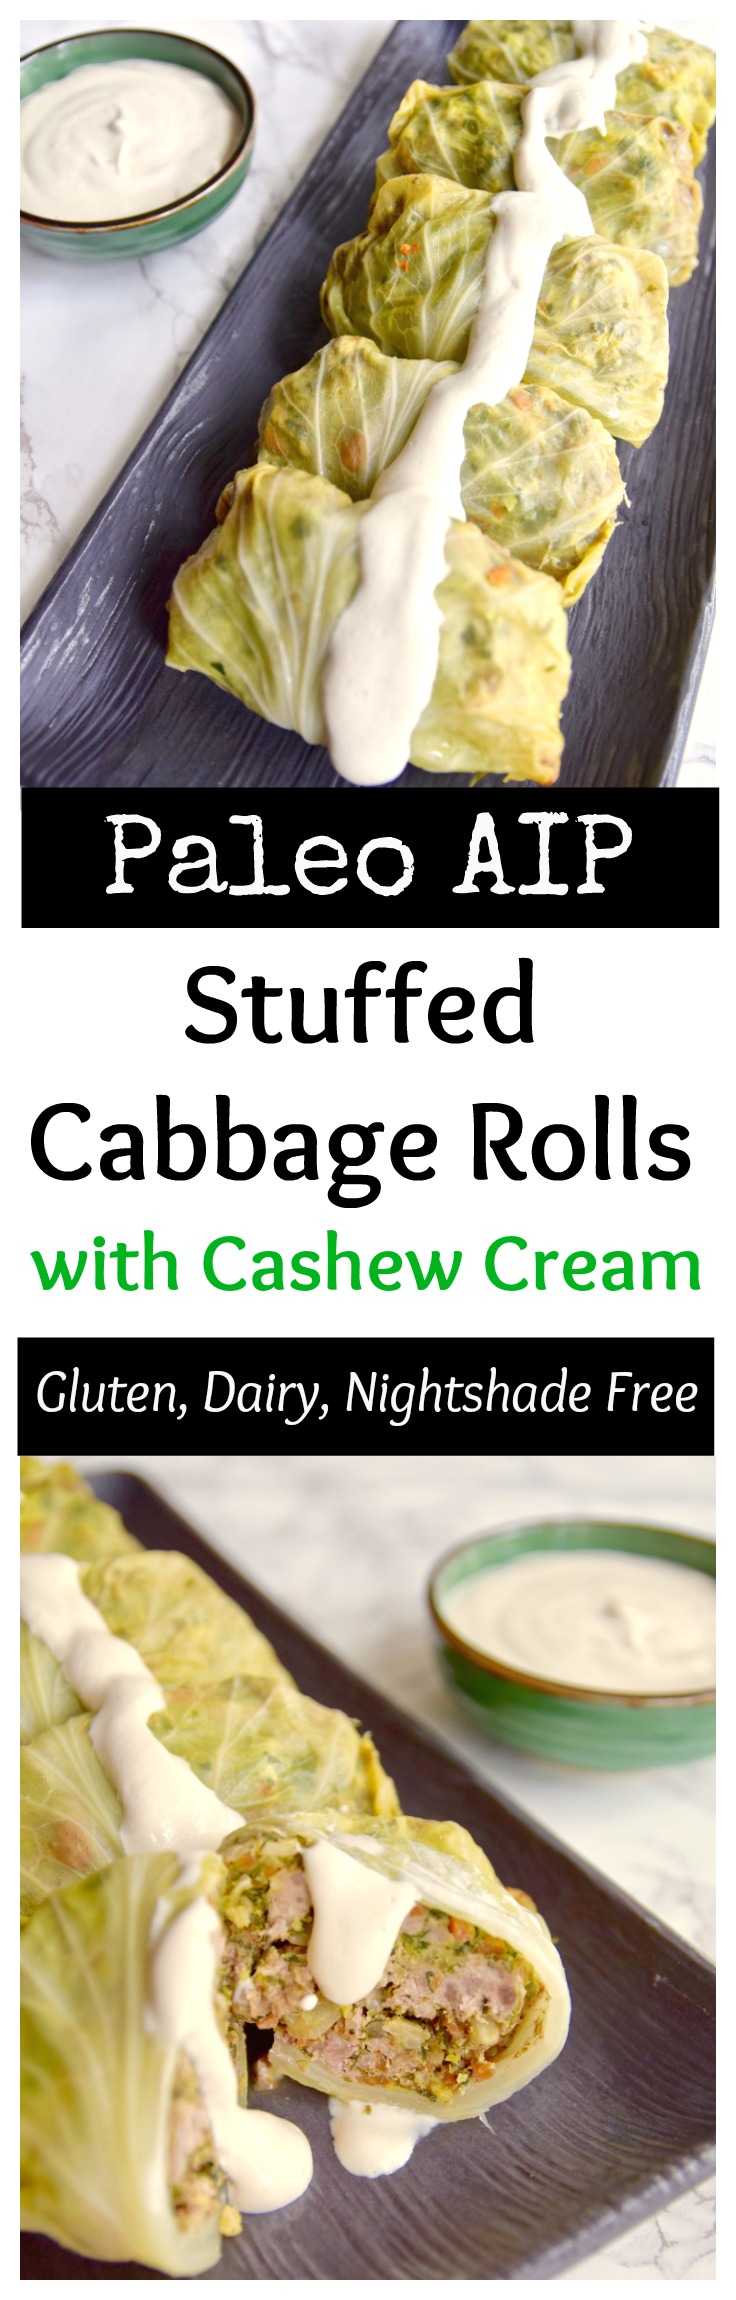 This tomato-less stuffed cabbage with cashew cream is great for St. Patrick's Day or any day of the year. It's dairy free, rice free and night shade free so great for AIP Paleo or a healthy meal | TastingPage.com #aip #aippaleo #paleo #paleodiet #paleodinner #stpatricksday #saintpatricksday #cabbage #glutenfree #glutenfreerecipes #dairyfree